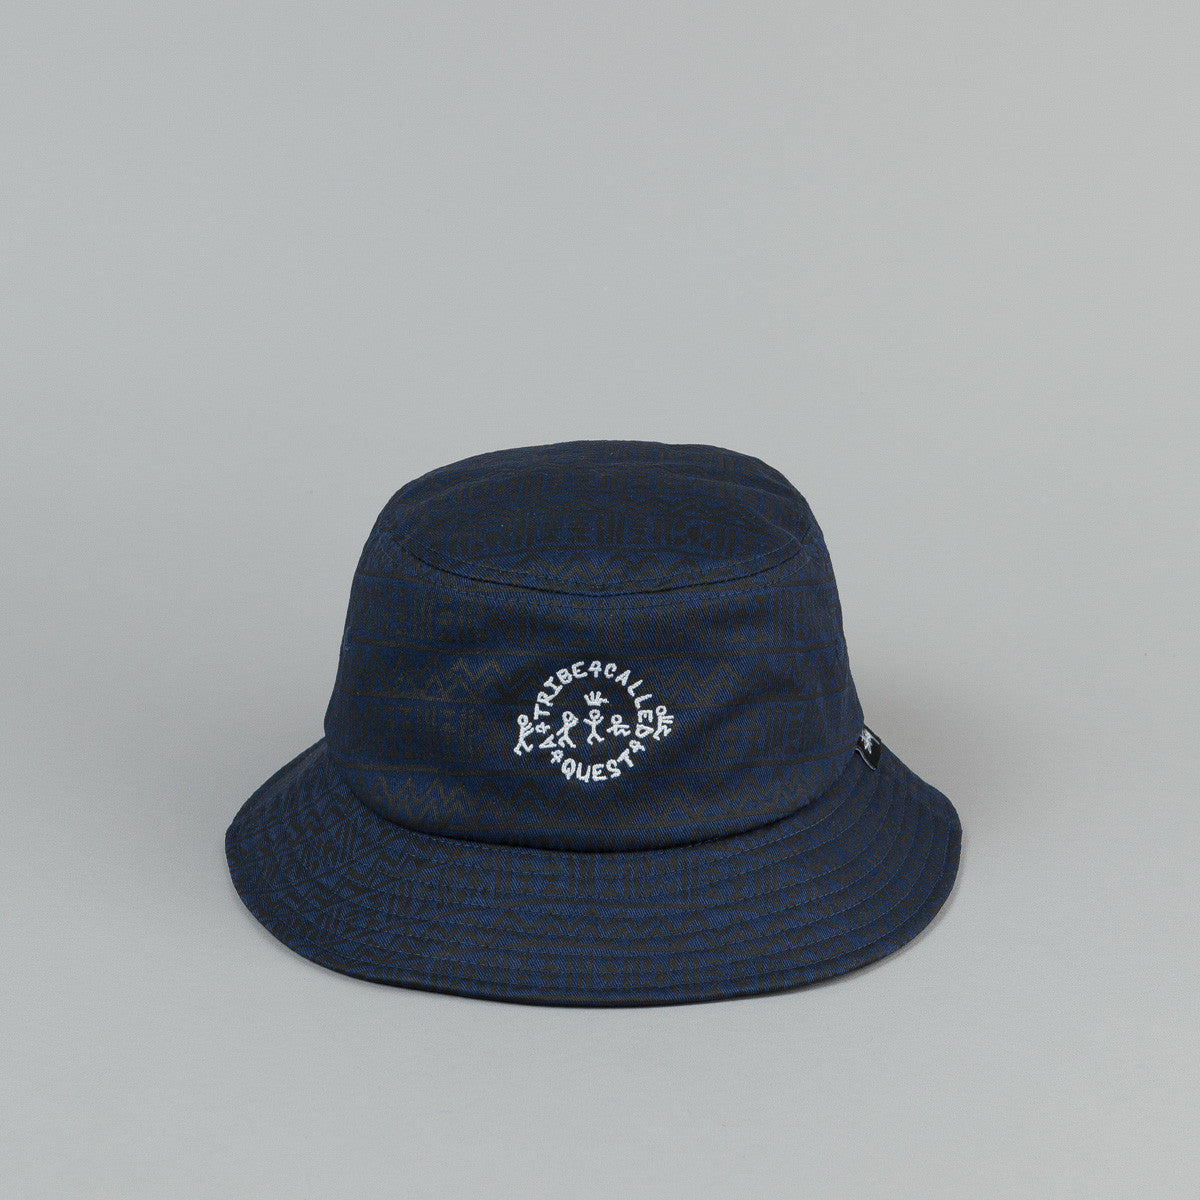 Stussy x ATCQ Bucket Hat Navy